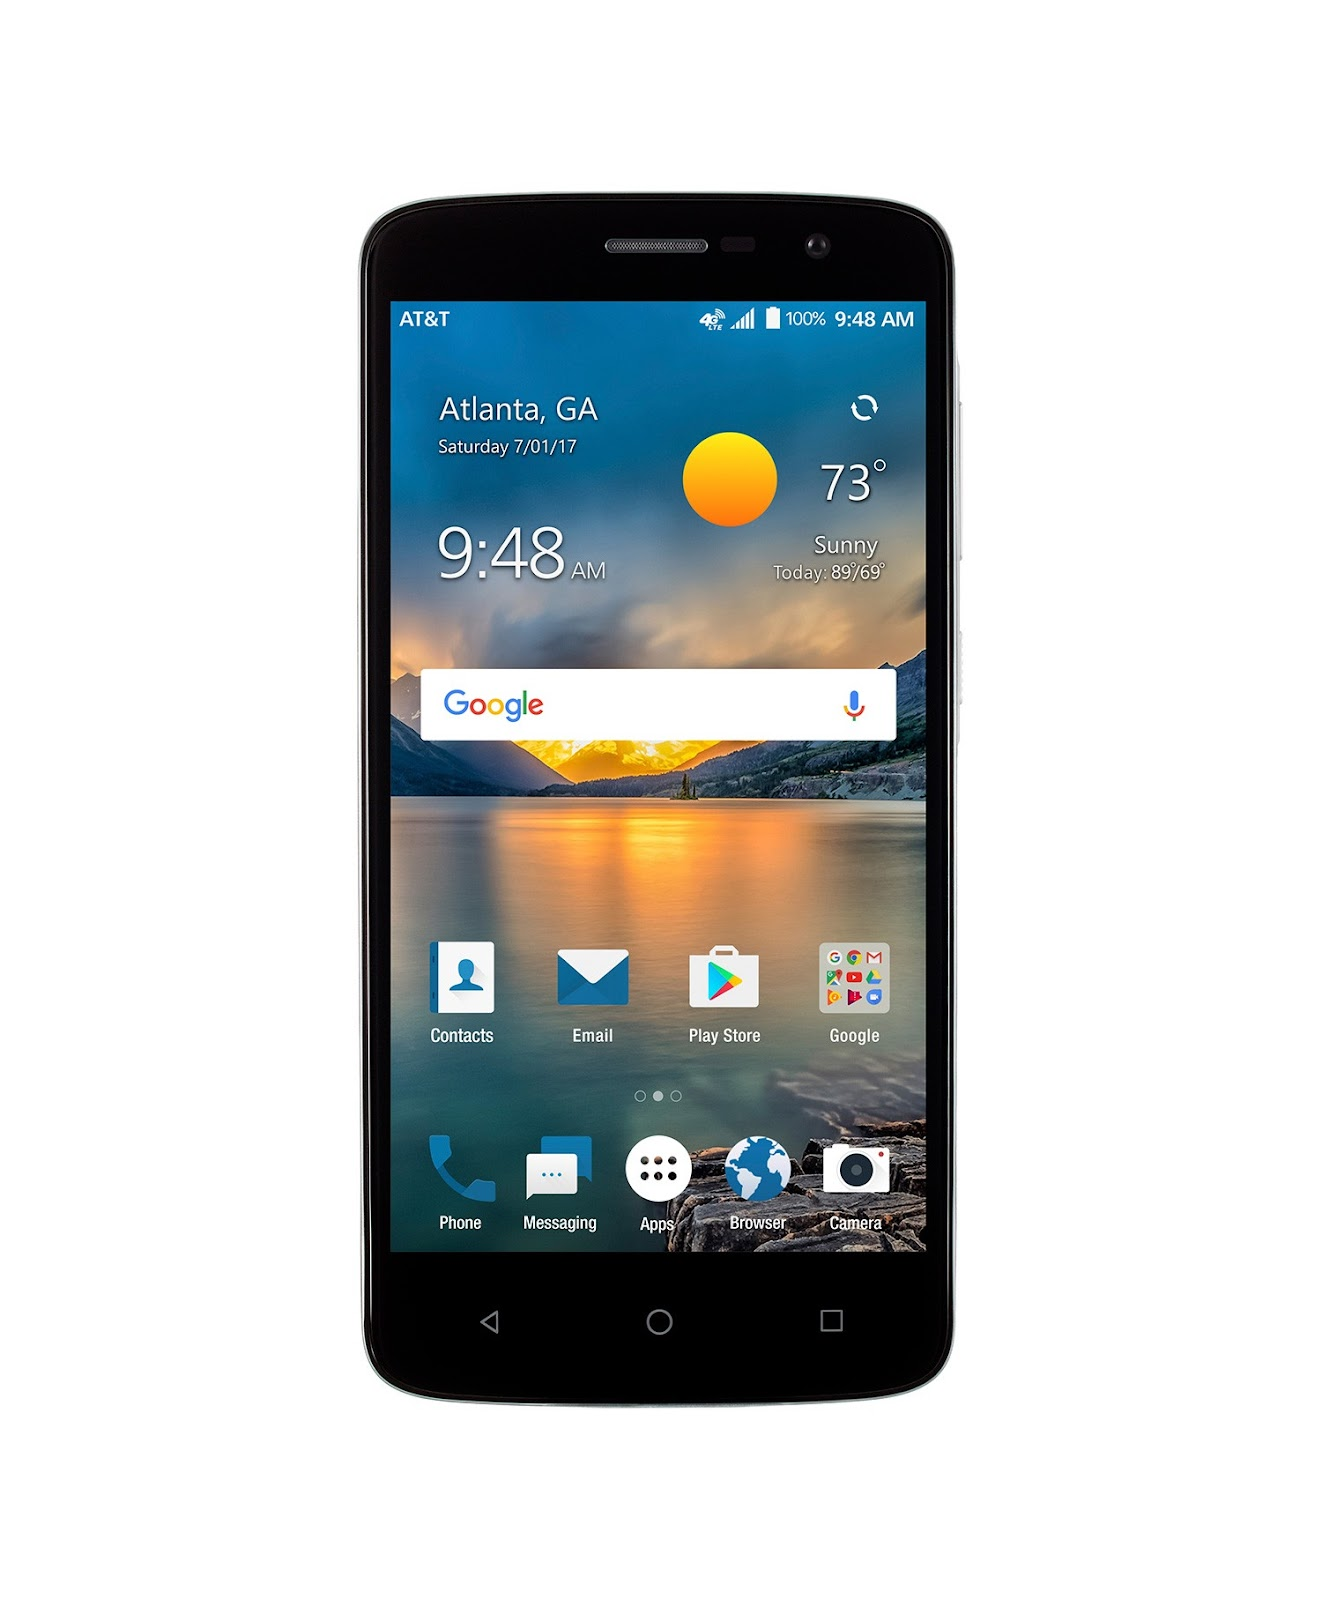 how do i get the user guide for the blade spark z971 with at t rh zte iqorsupport custhelp com cisco spark phone user guide Samsung Spark